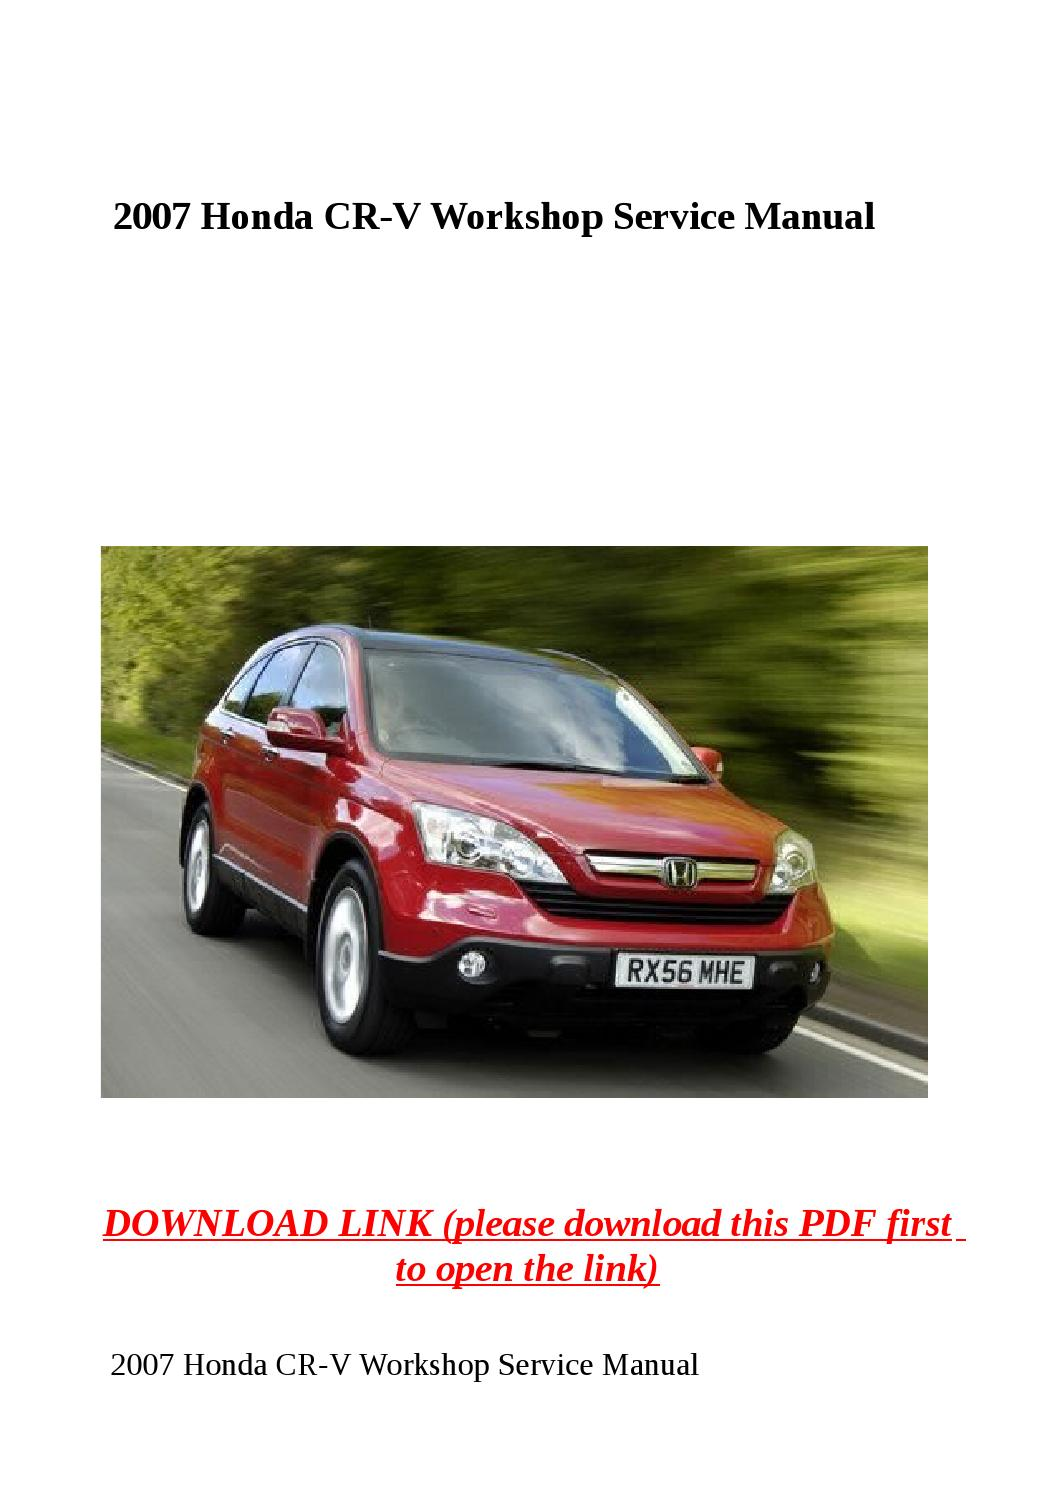 2007 honda crv service manual download